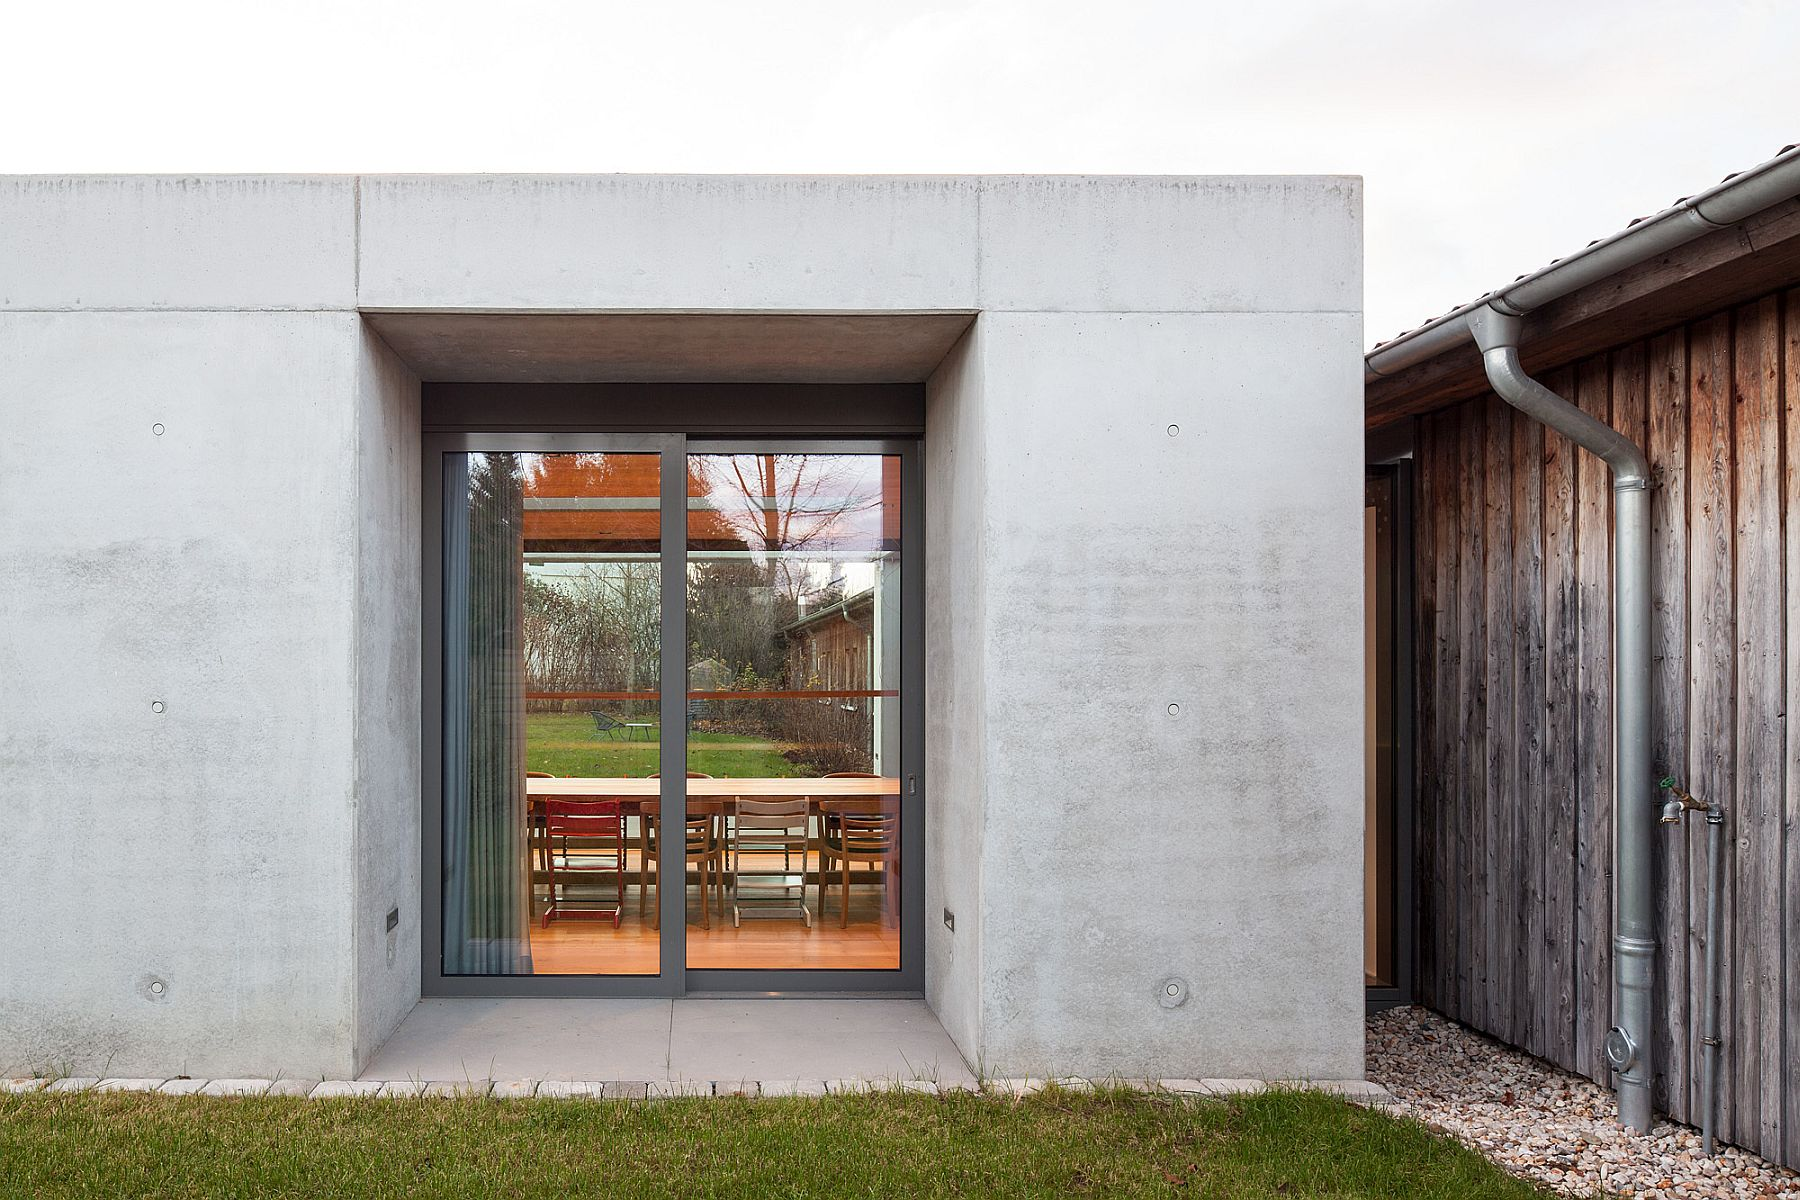 Concrete and glass shape the minimal and modern extension of the German home